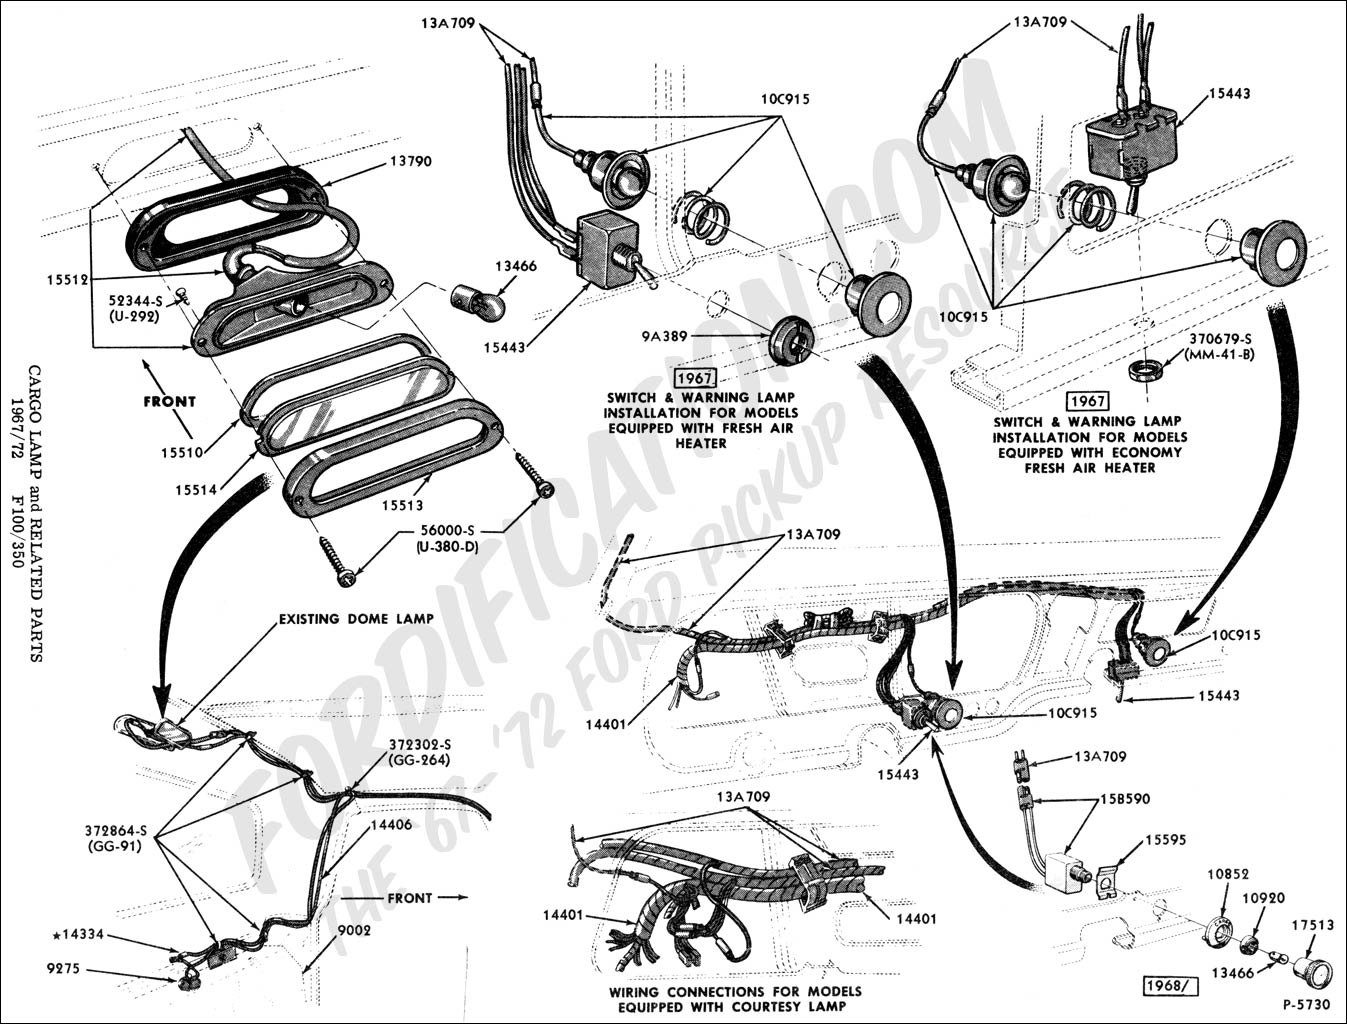 1999 F350 Engine Diagram Auto Electrical Wiring Ford Parts Free Image For